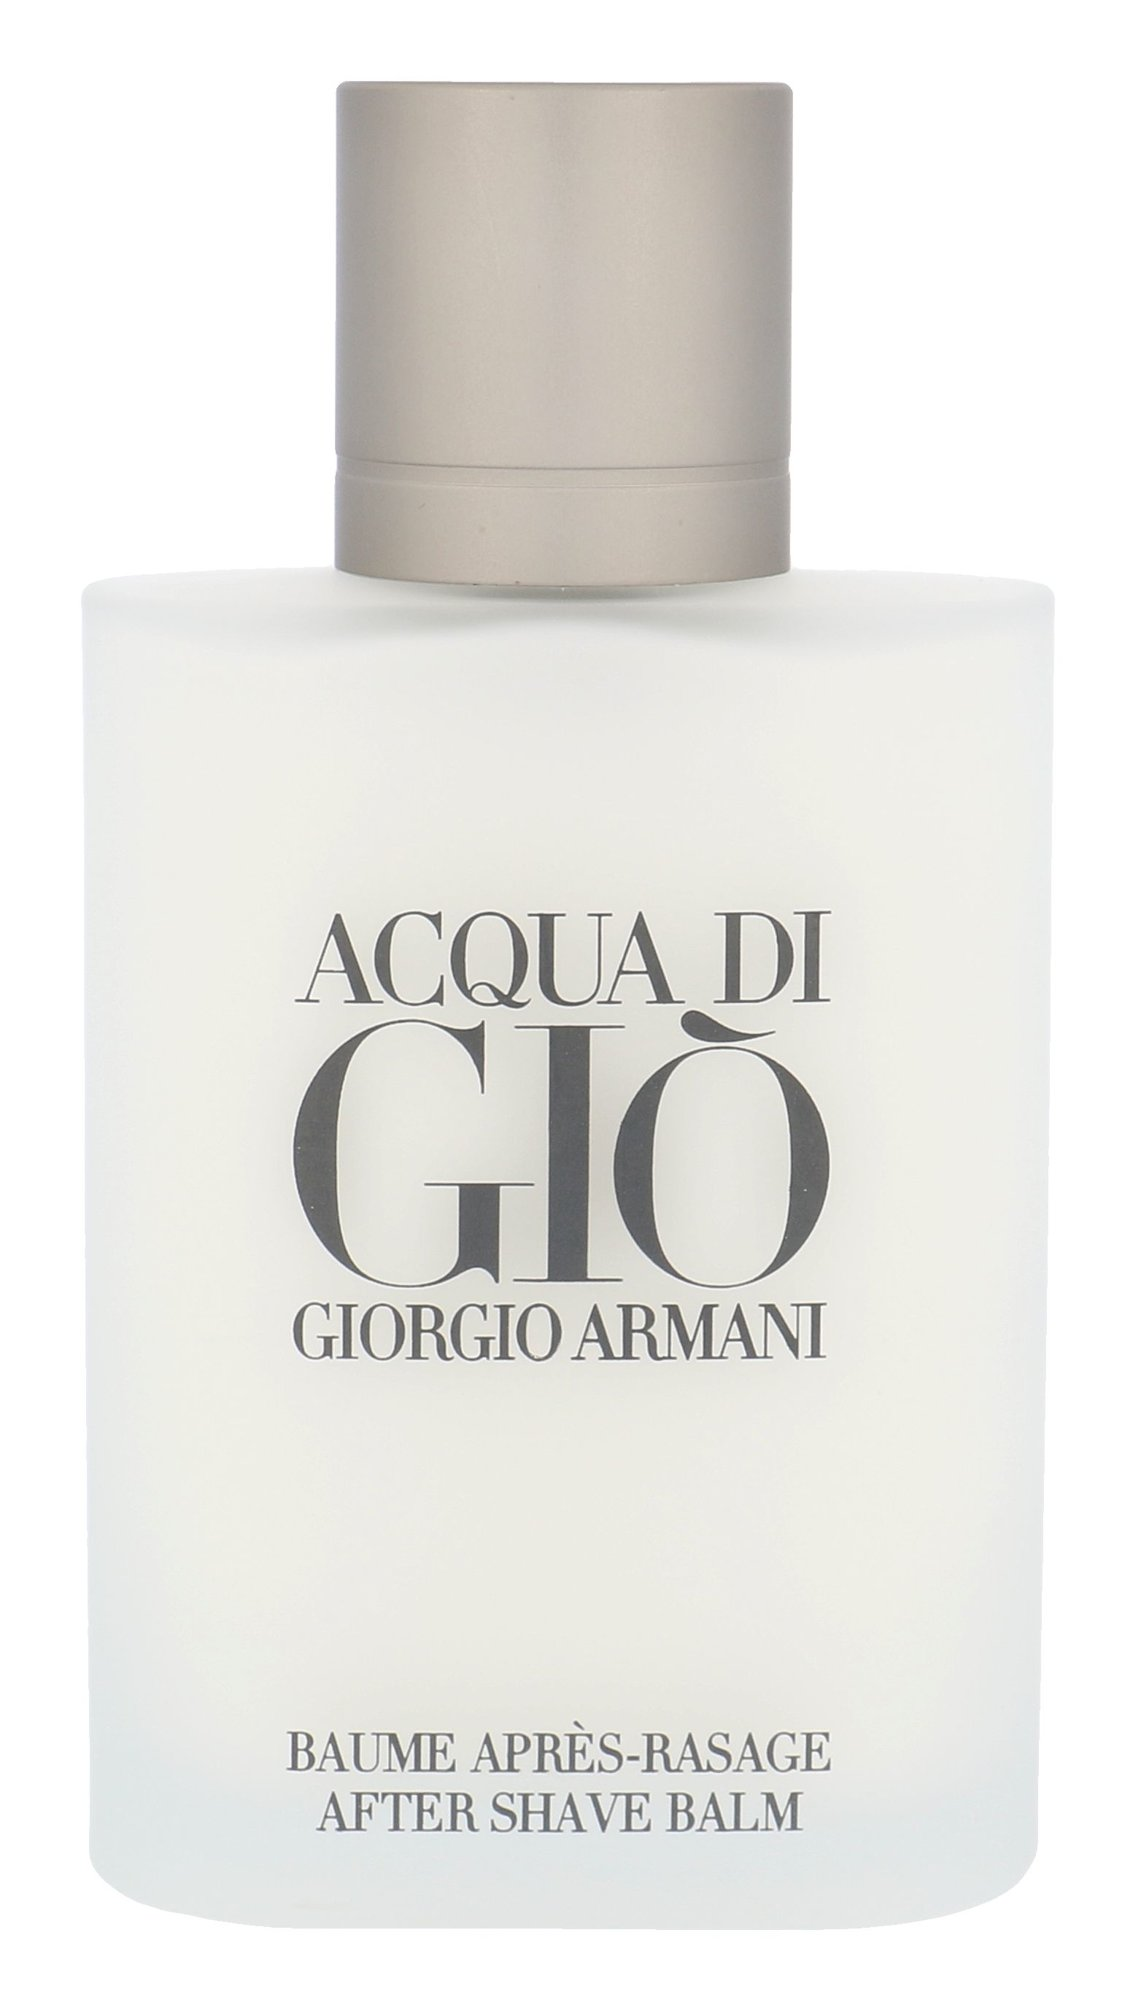 Giorgio Armani Acqua di Gio After shave balm 100ml  Pour Homme